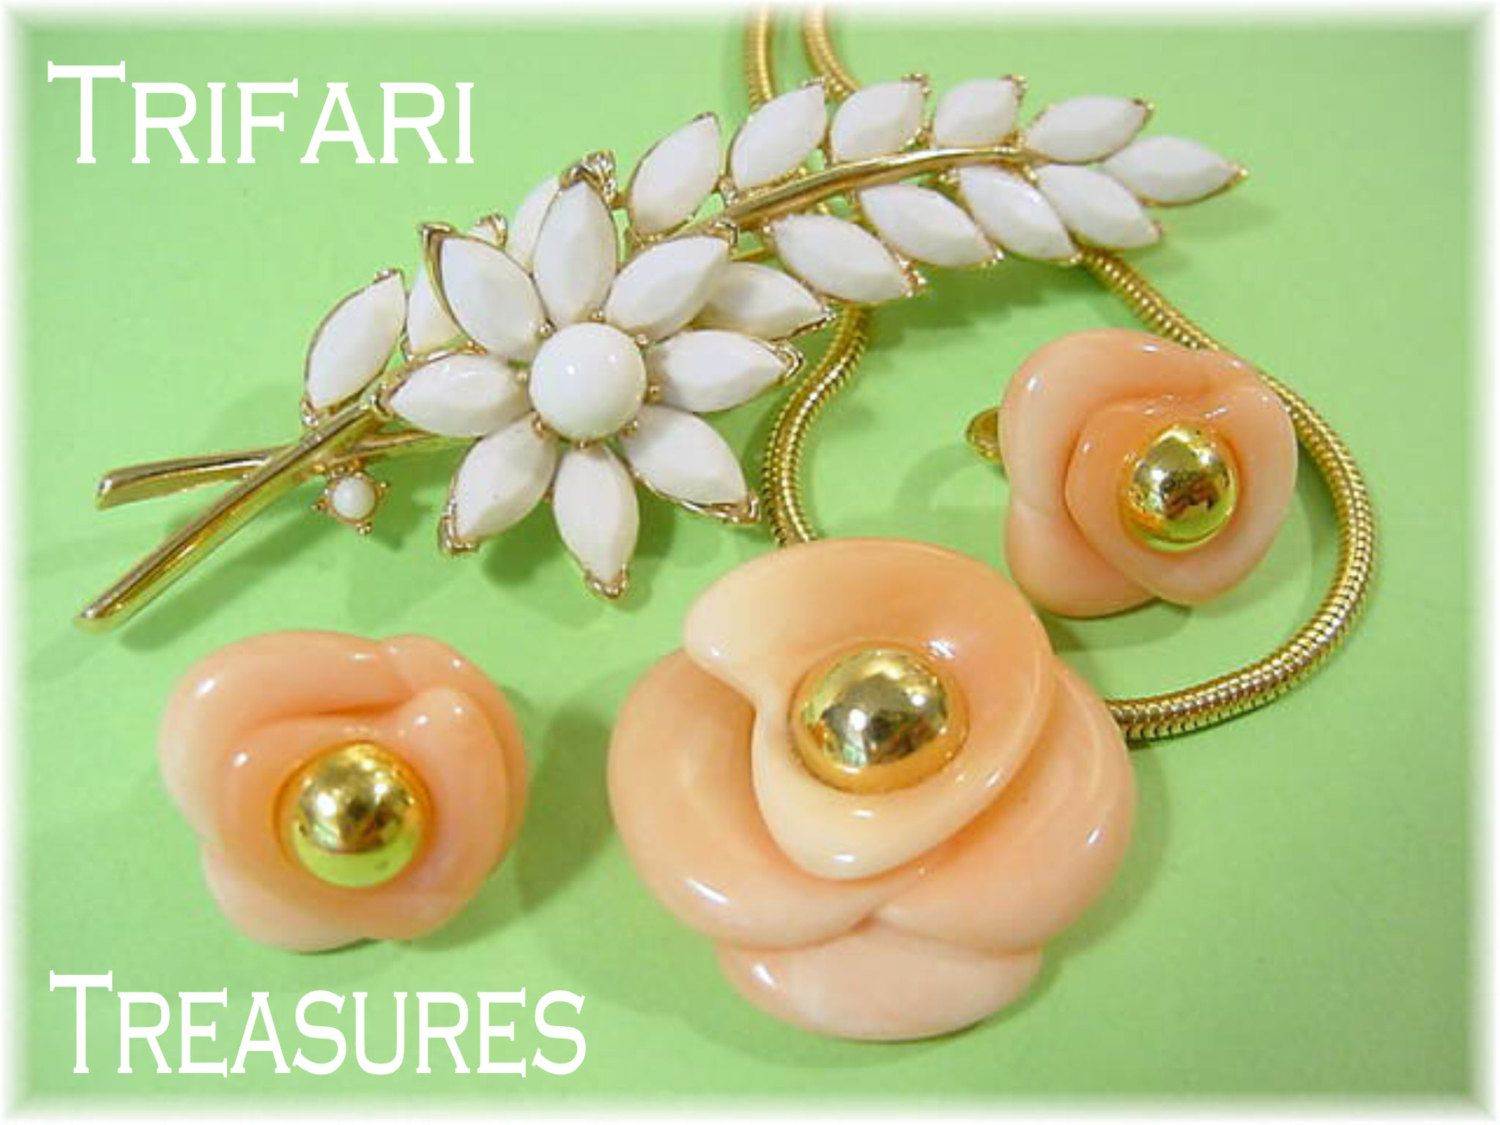 TRIFARI - White Rhinestone Floral Brooch Pin & Peach Rose Flower Necklace Earrings Set - Estate Antique Costume Jewelry - FREE SHIPPING